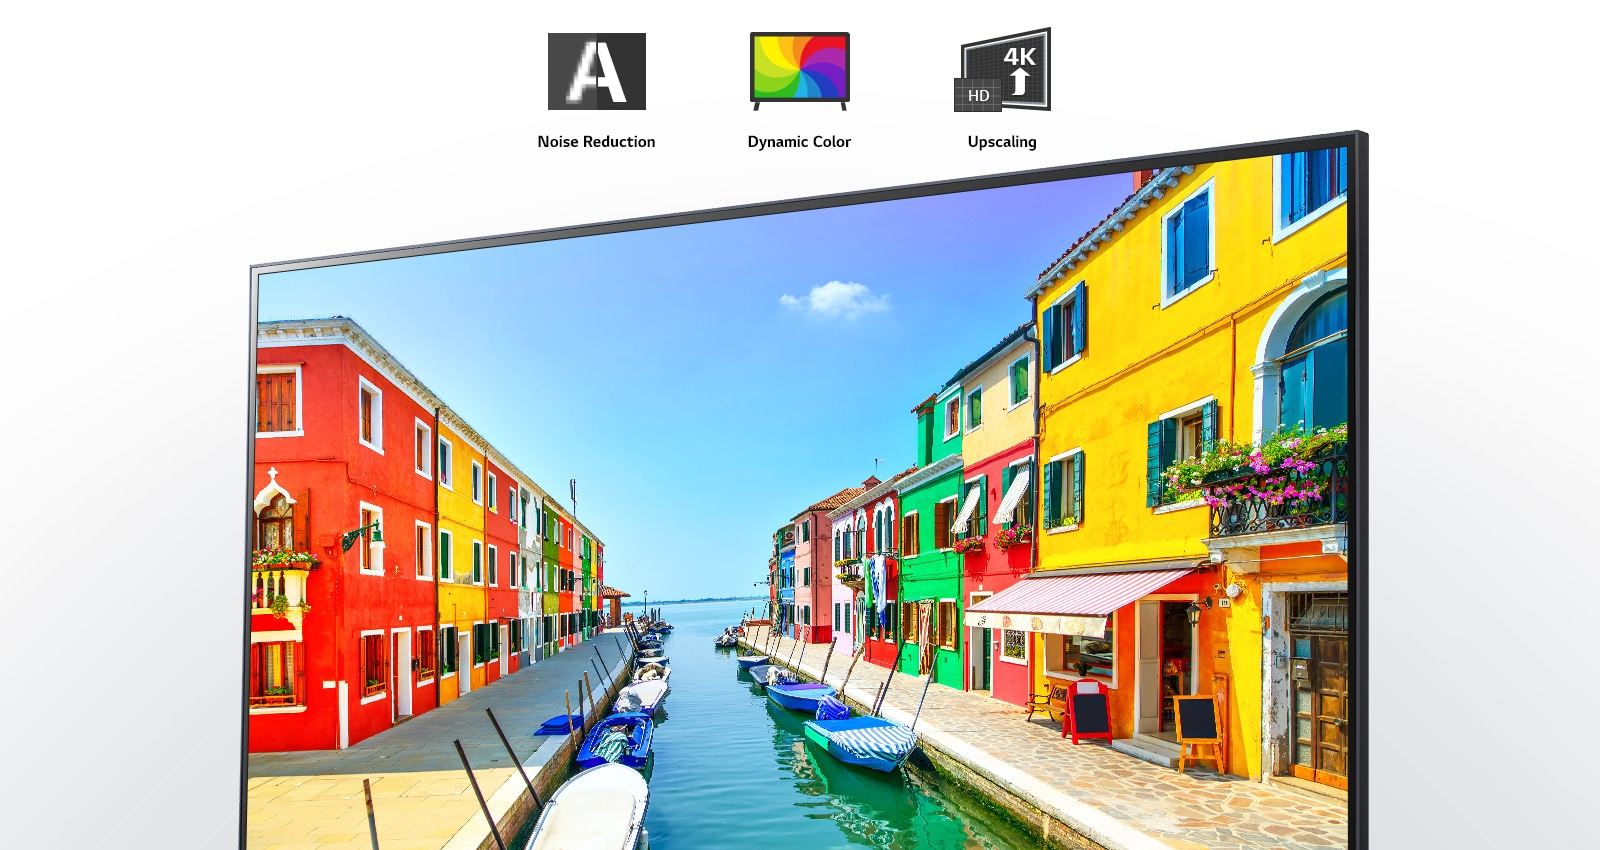 A LG NanoCell TV screen displaying a port city where buildings are painted in multiple colors and little boats are anchored in long and narrow harbor to highlight the Quad Core Processor 4K on LG TVs